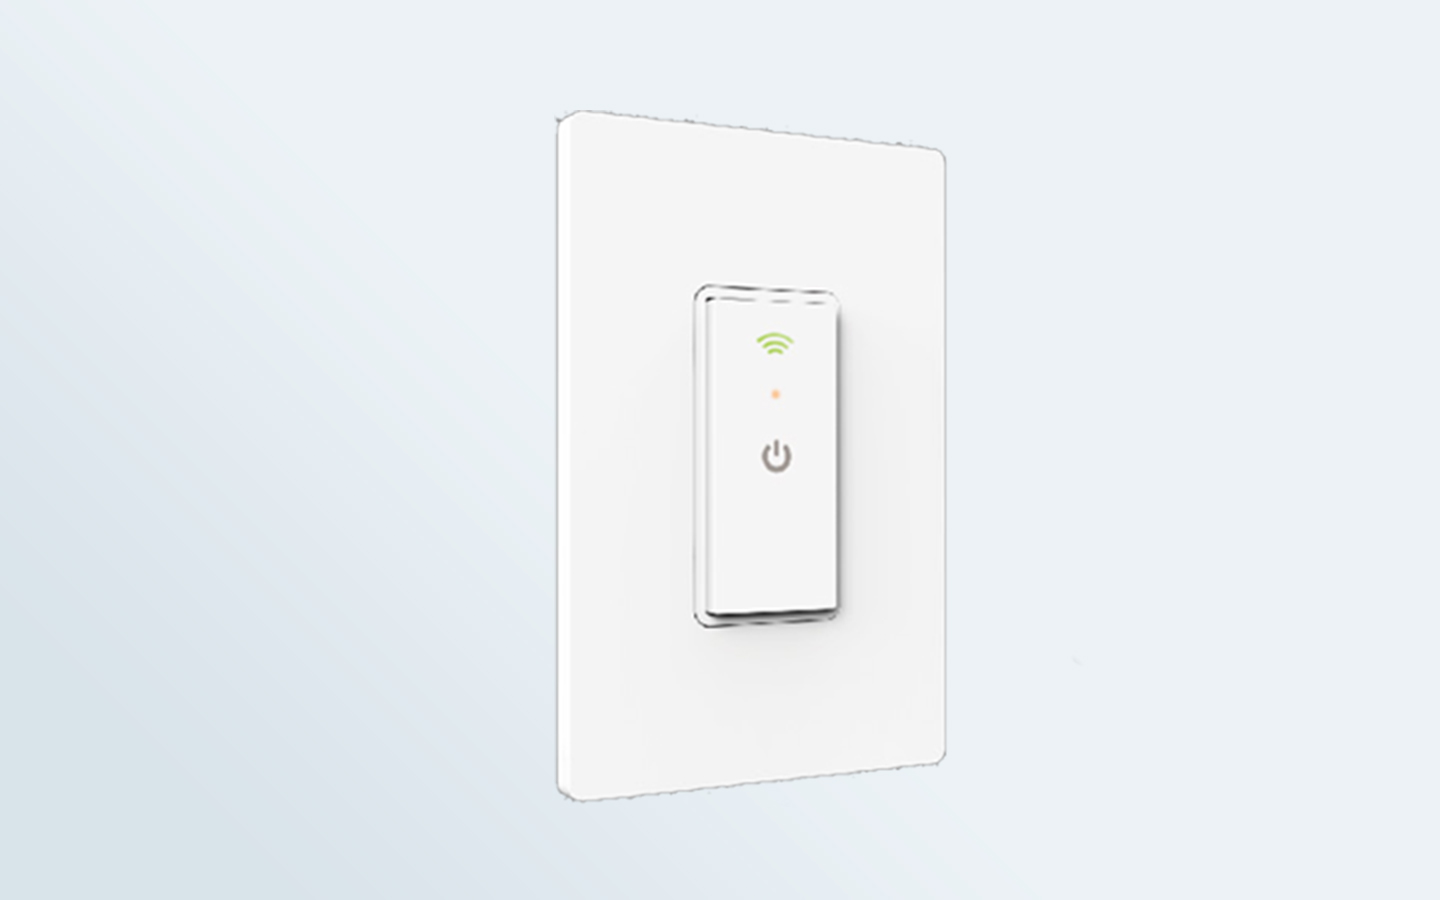 Best Smart Light Switches of 2019 - Lighting Control System